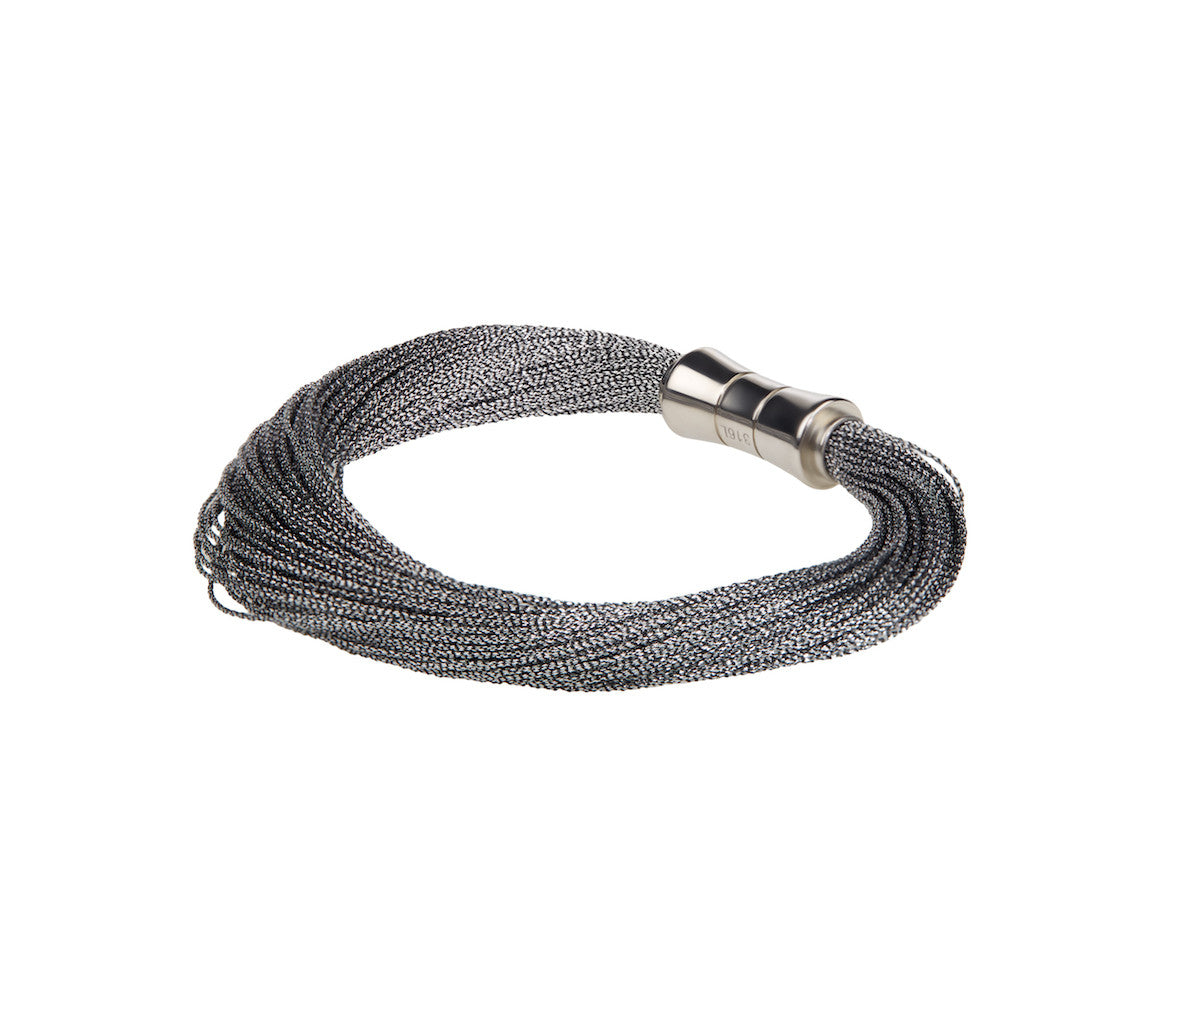 Silver-Black Metallic Cord Bracelet with Steel Clasp